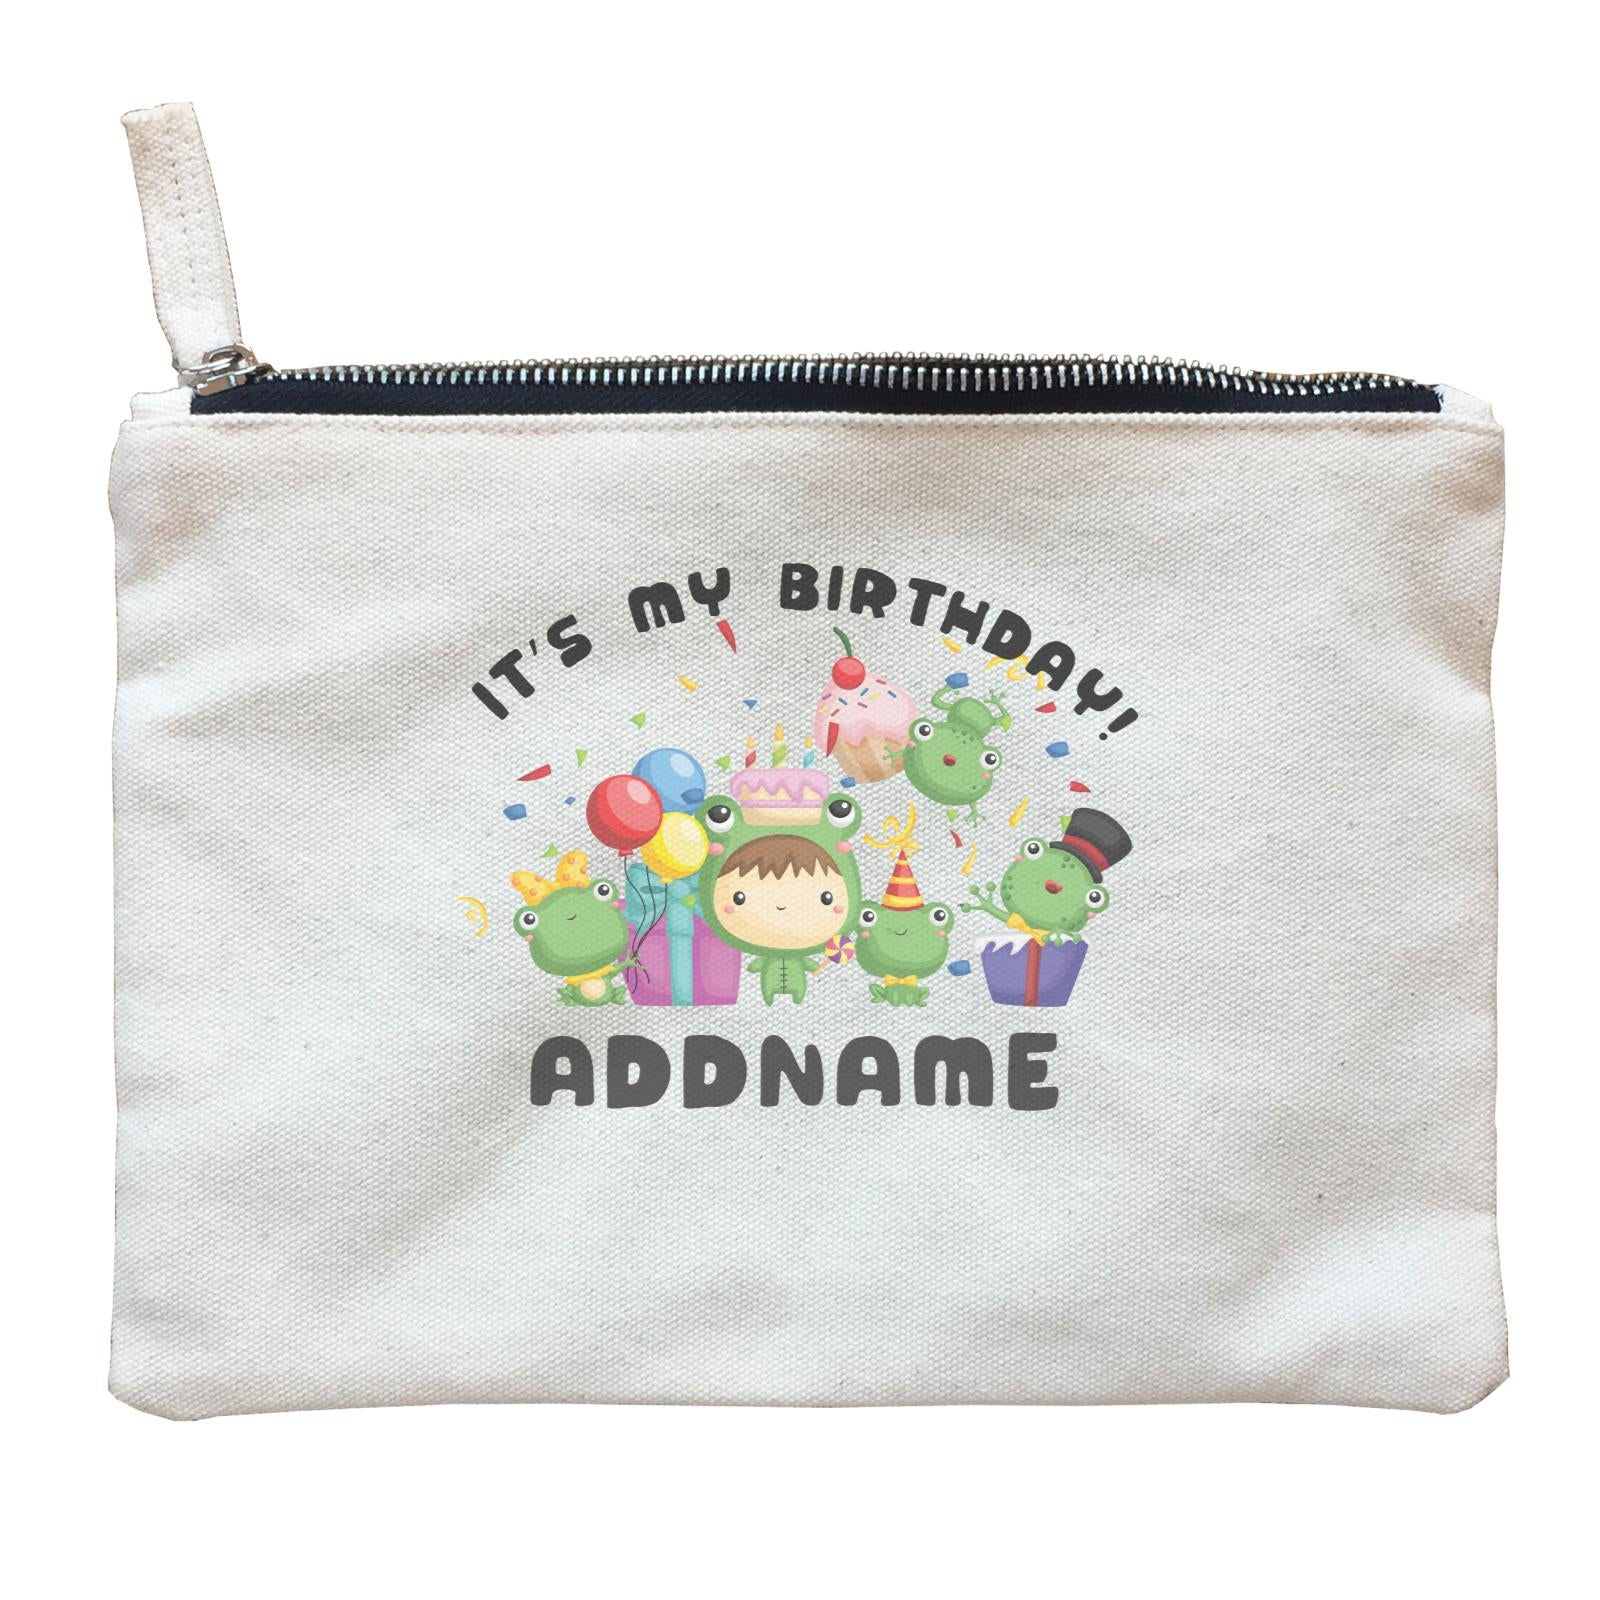 Birthday Frog Happy Frog Group It's My Birthday Addname Zipper Pouch